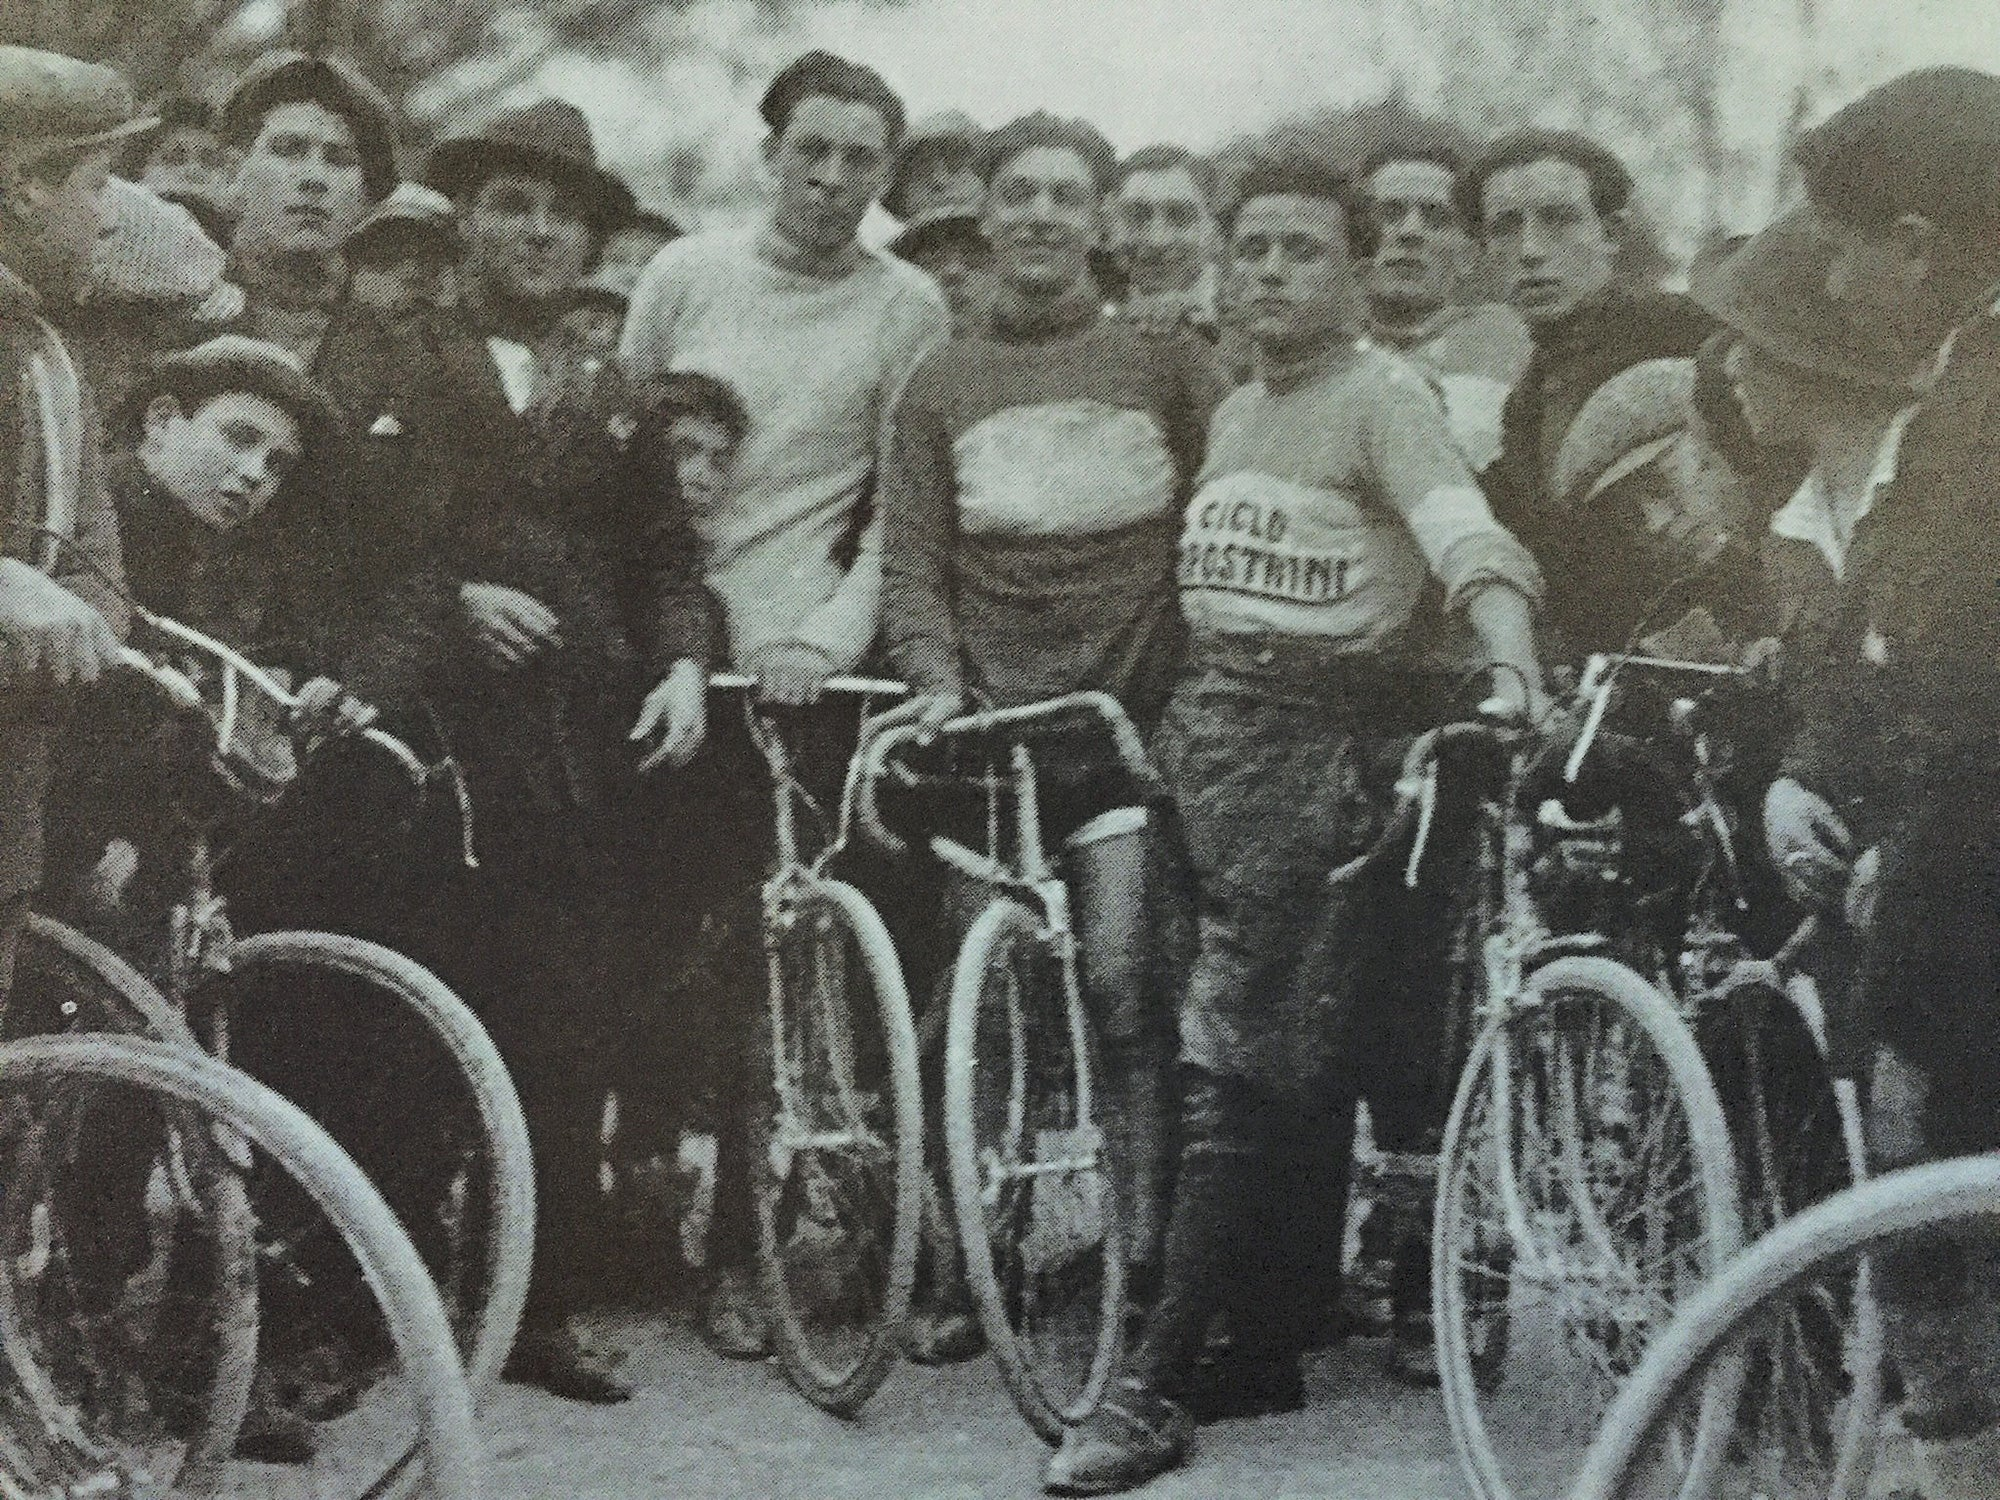 group of bicycle riders